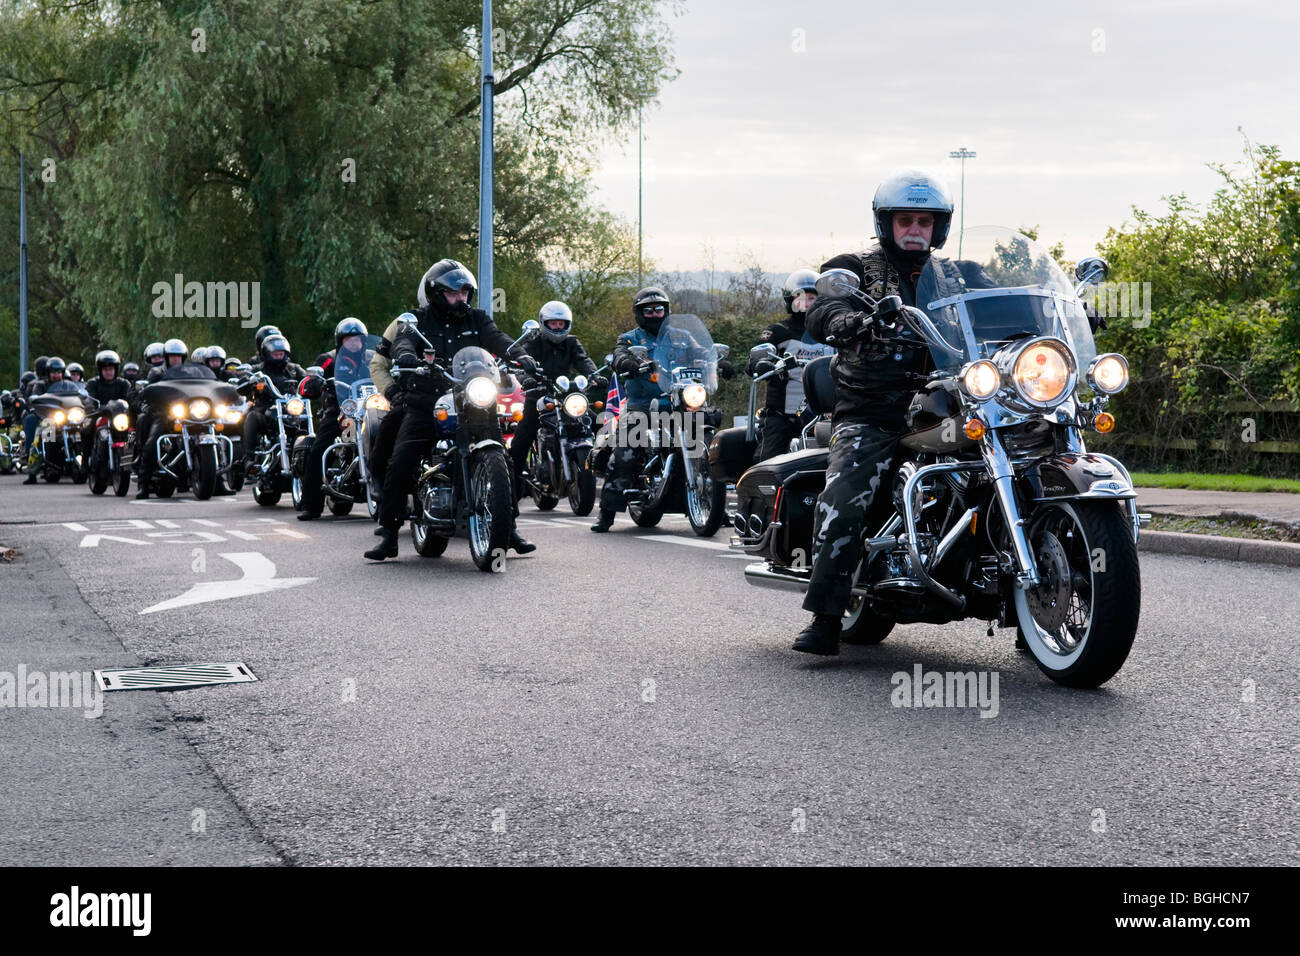 Harley Davidson and other classic bike gathering known as hoggin the bridge at Aust services, England - Stock Image